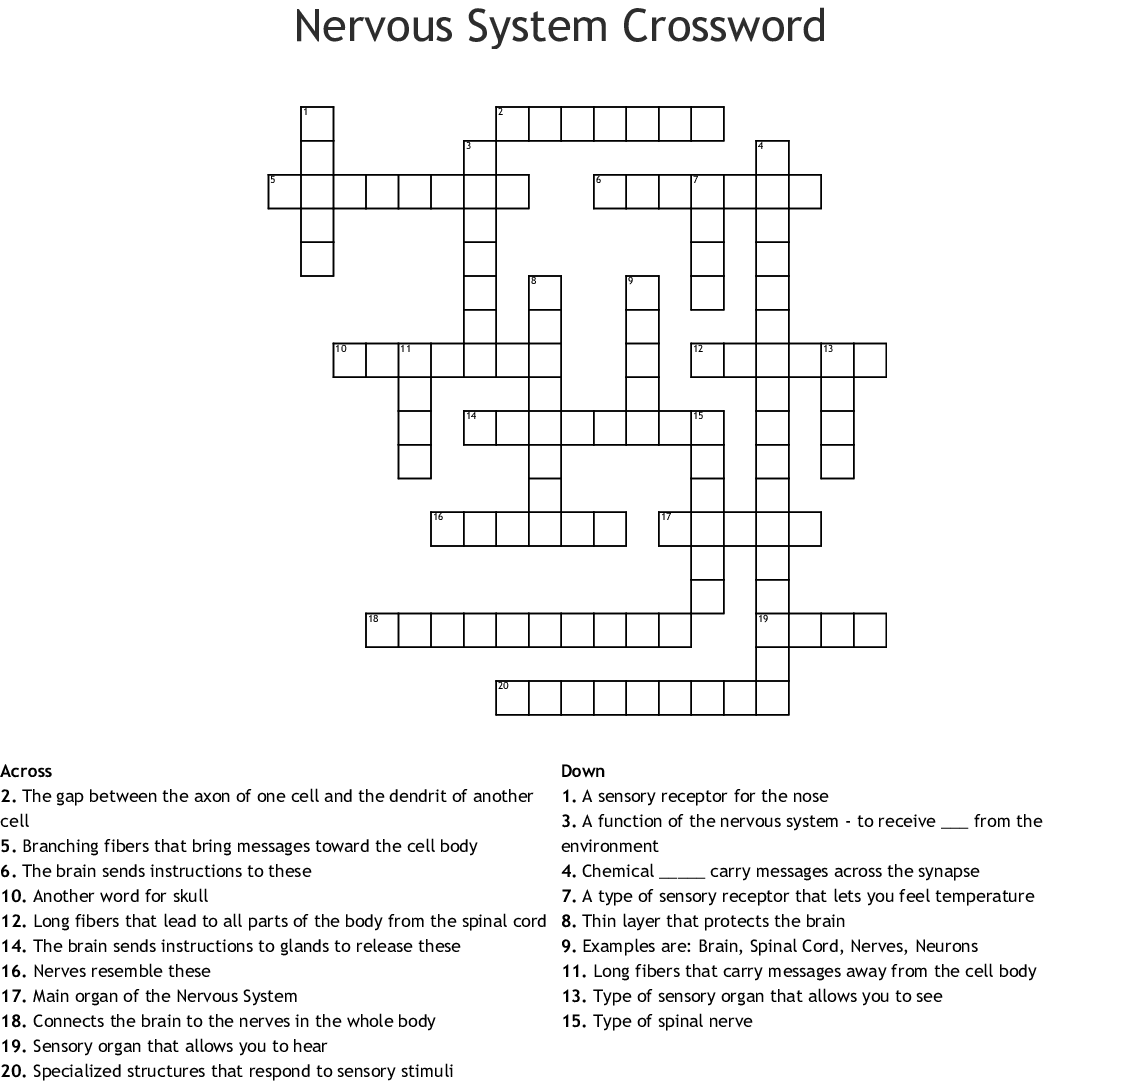 7th Grade Nervous System Crossword Puzzle Answer Key